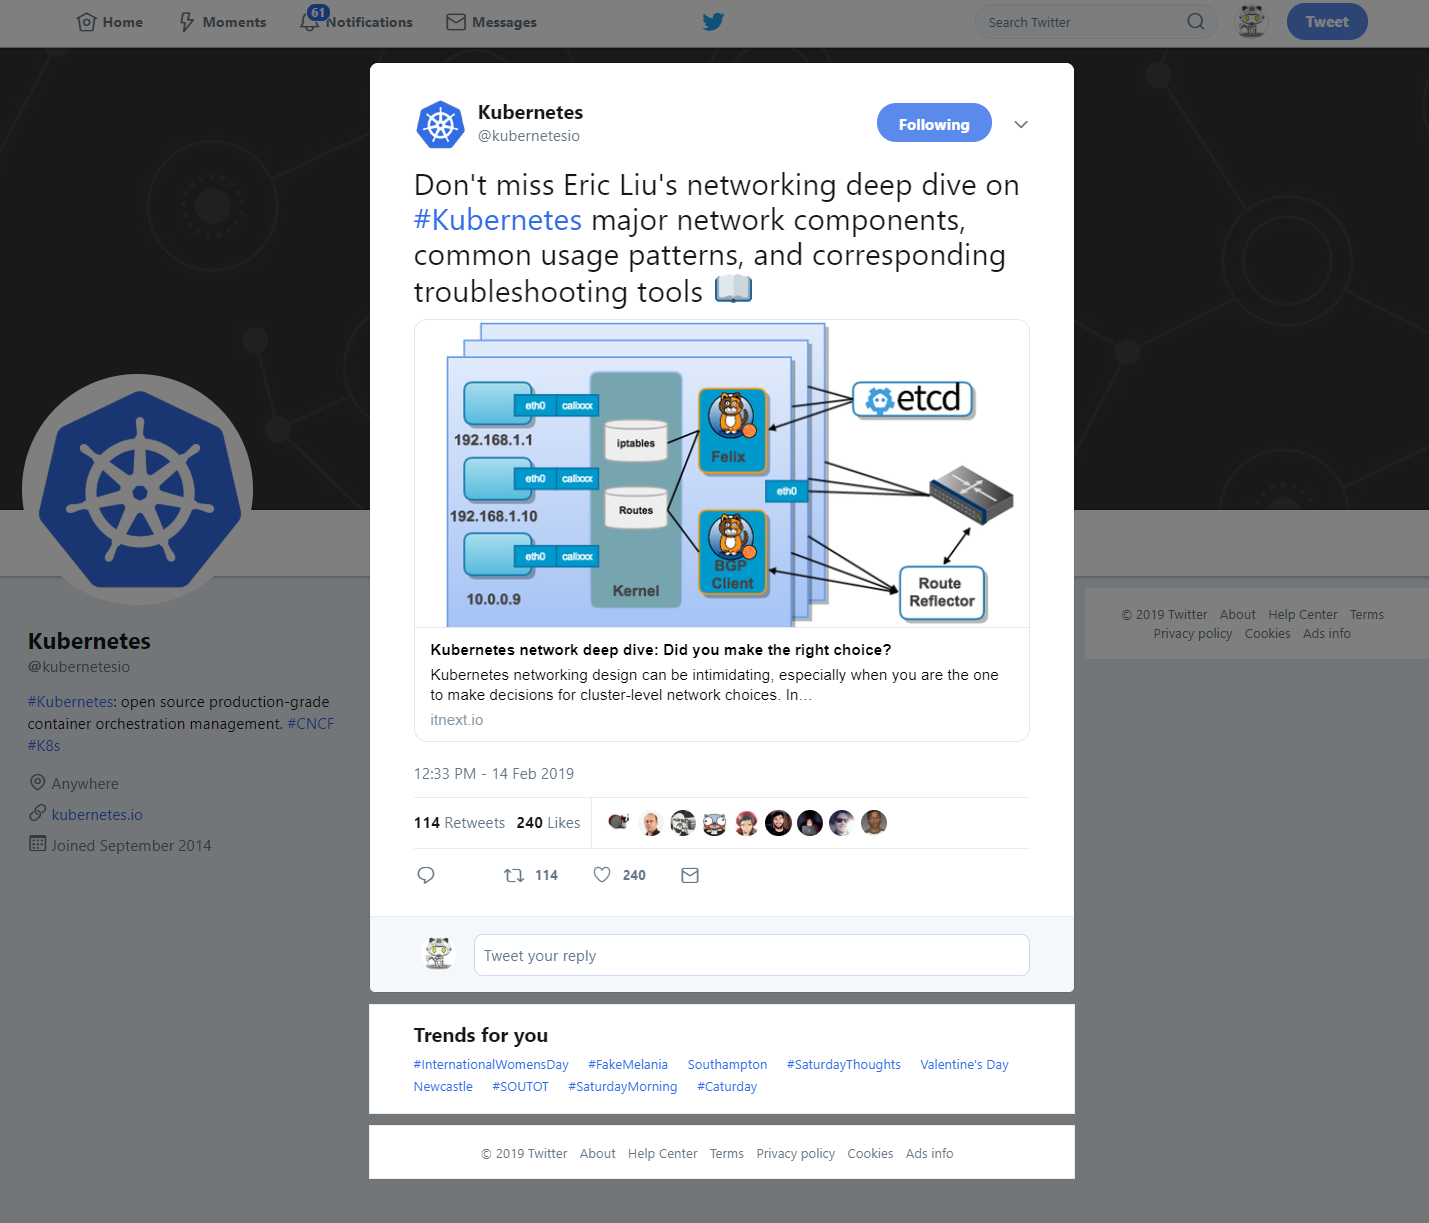 Kubernetes networking deep dive: Did you make the right choice?